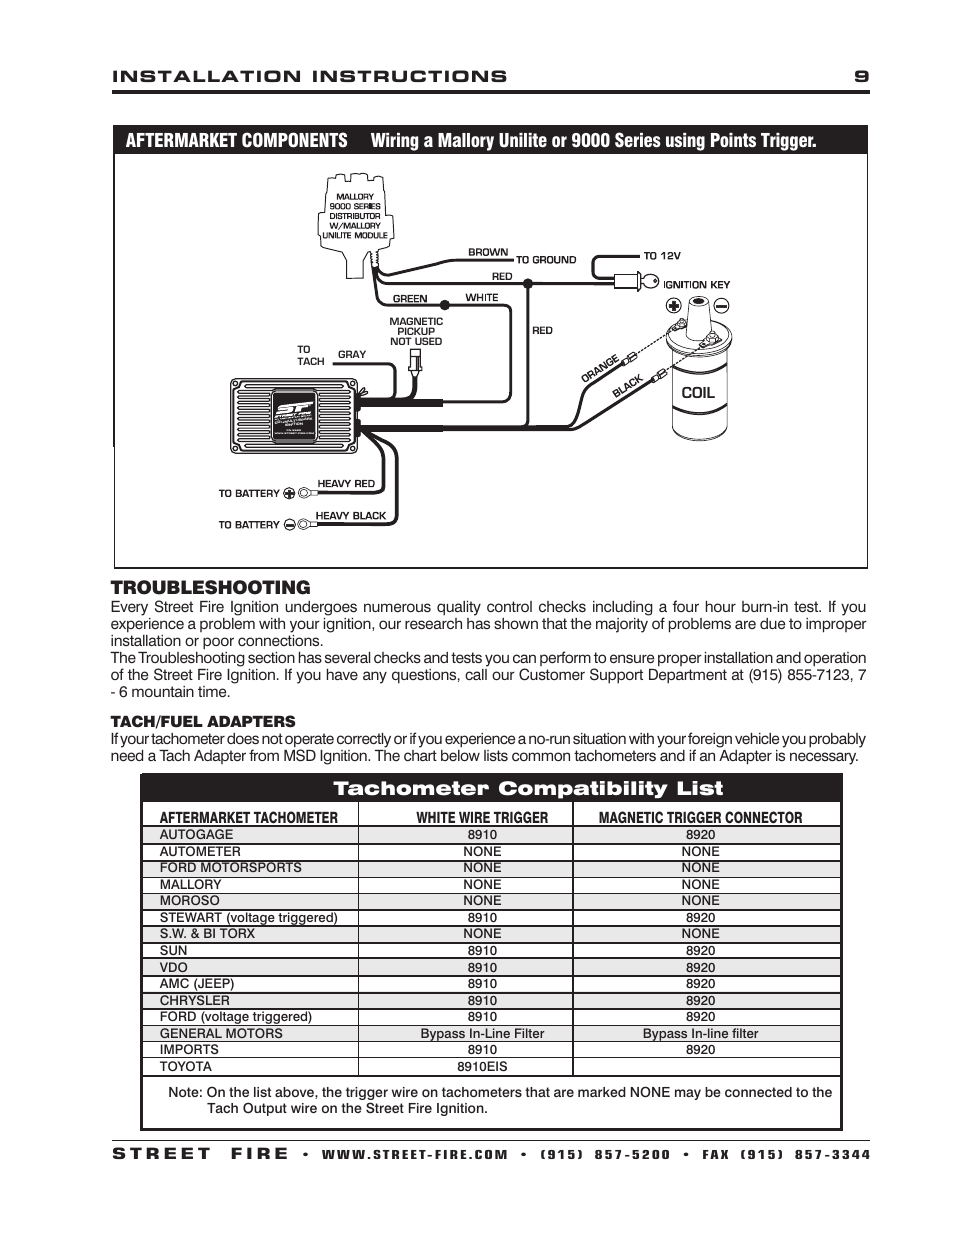 msd 5520 street fire ignition control installation page9 troubleshooting, tachometer compatibility list msd 5520 street firecom intercom wiring diagrams at gsmx.co